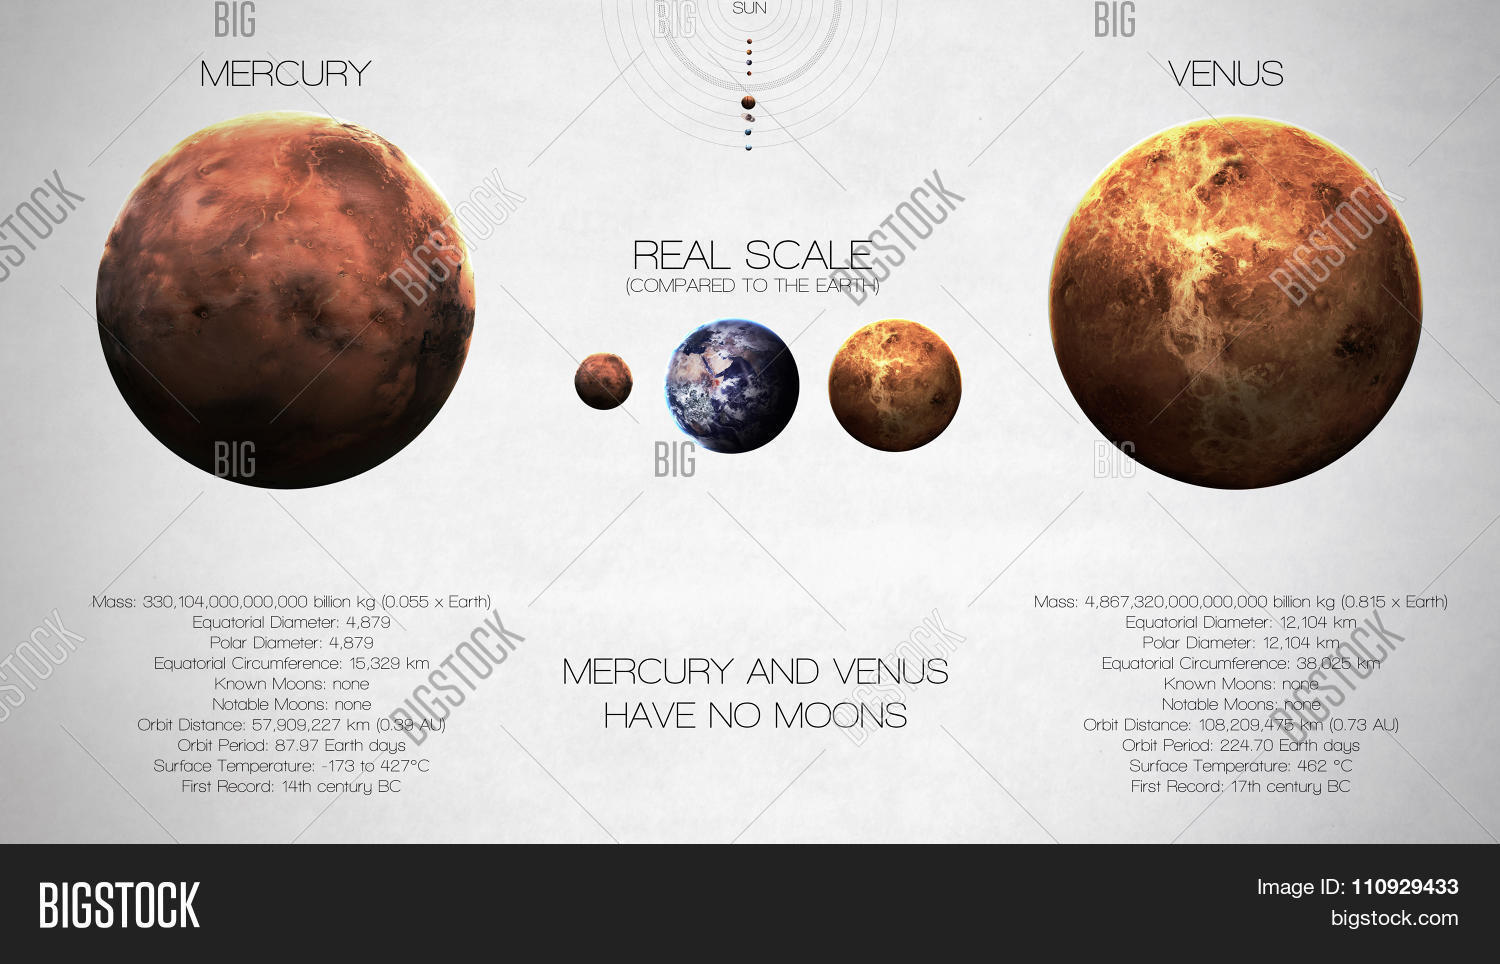 all the moons on venus - photo #35